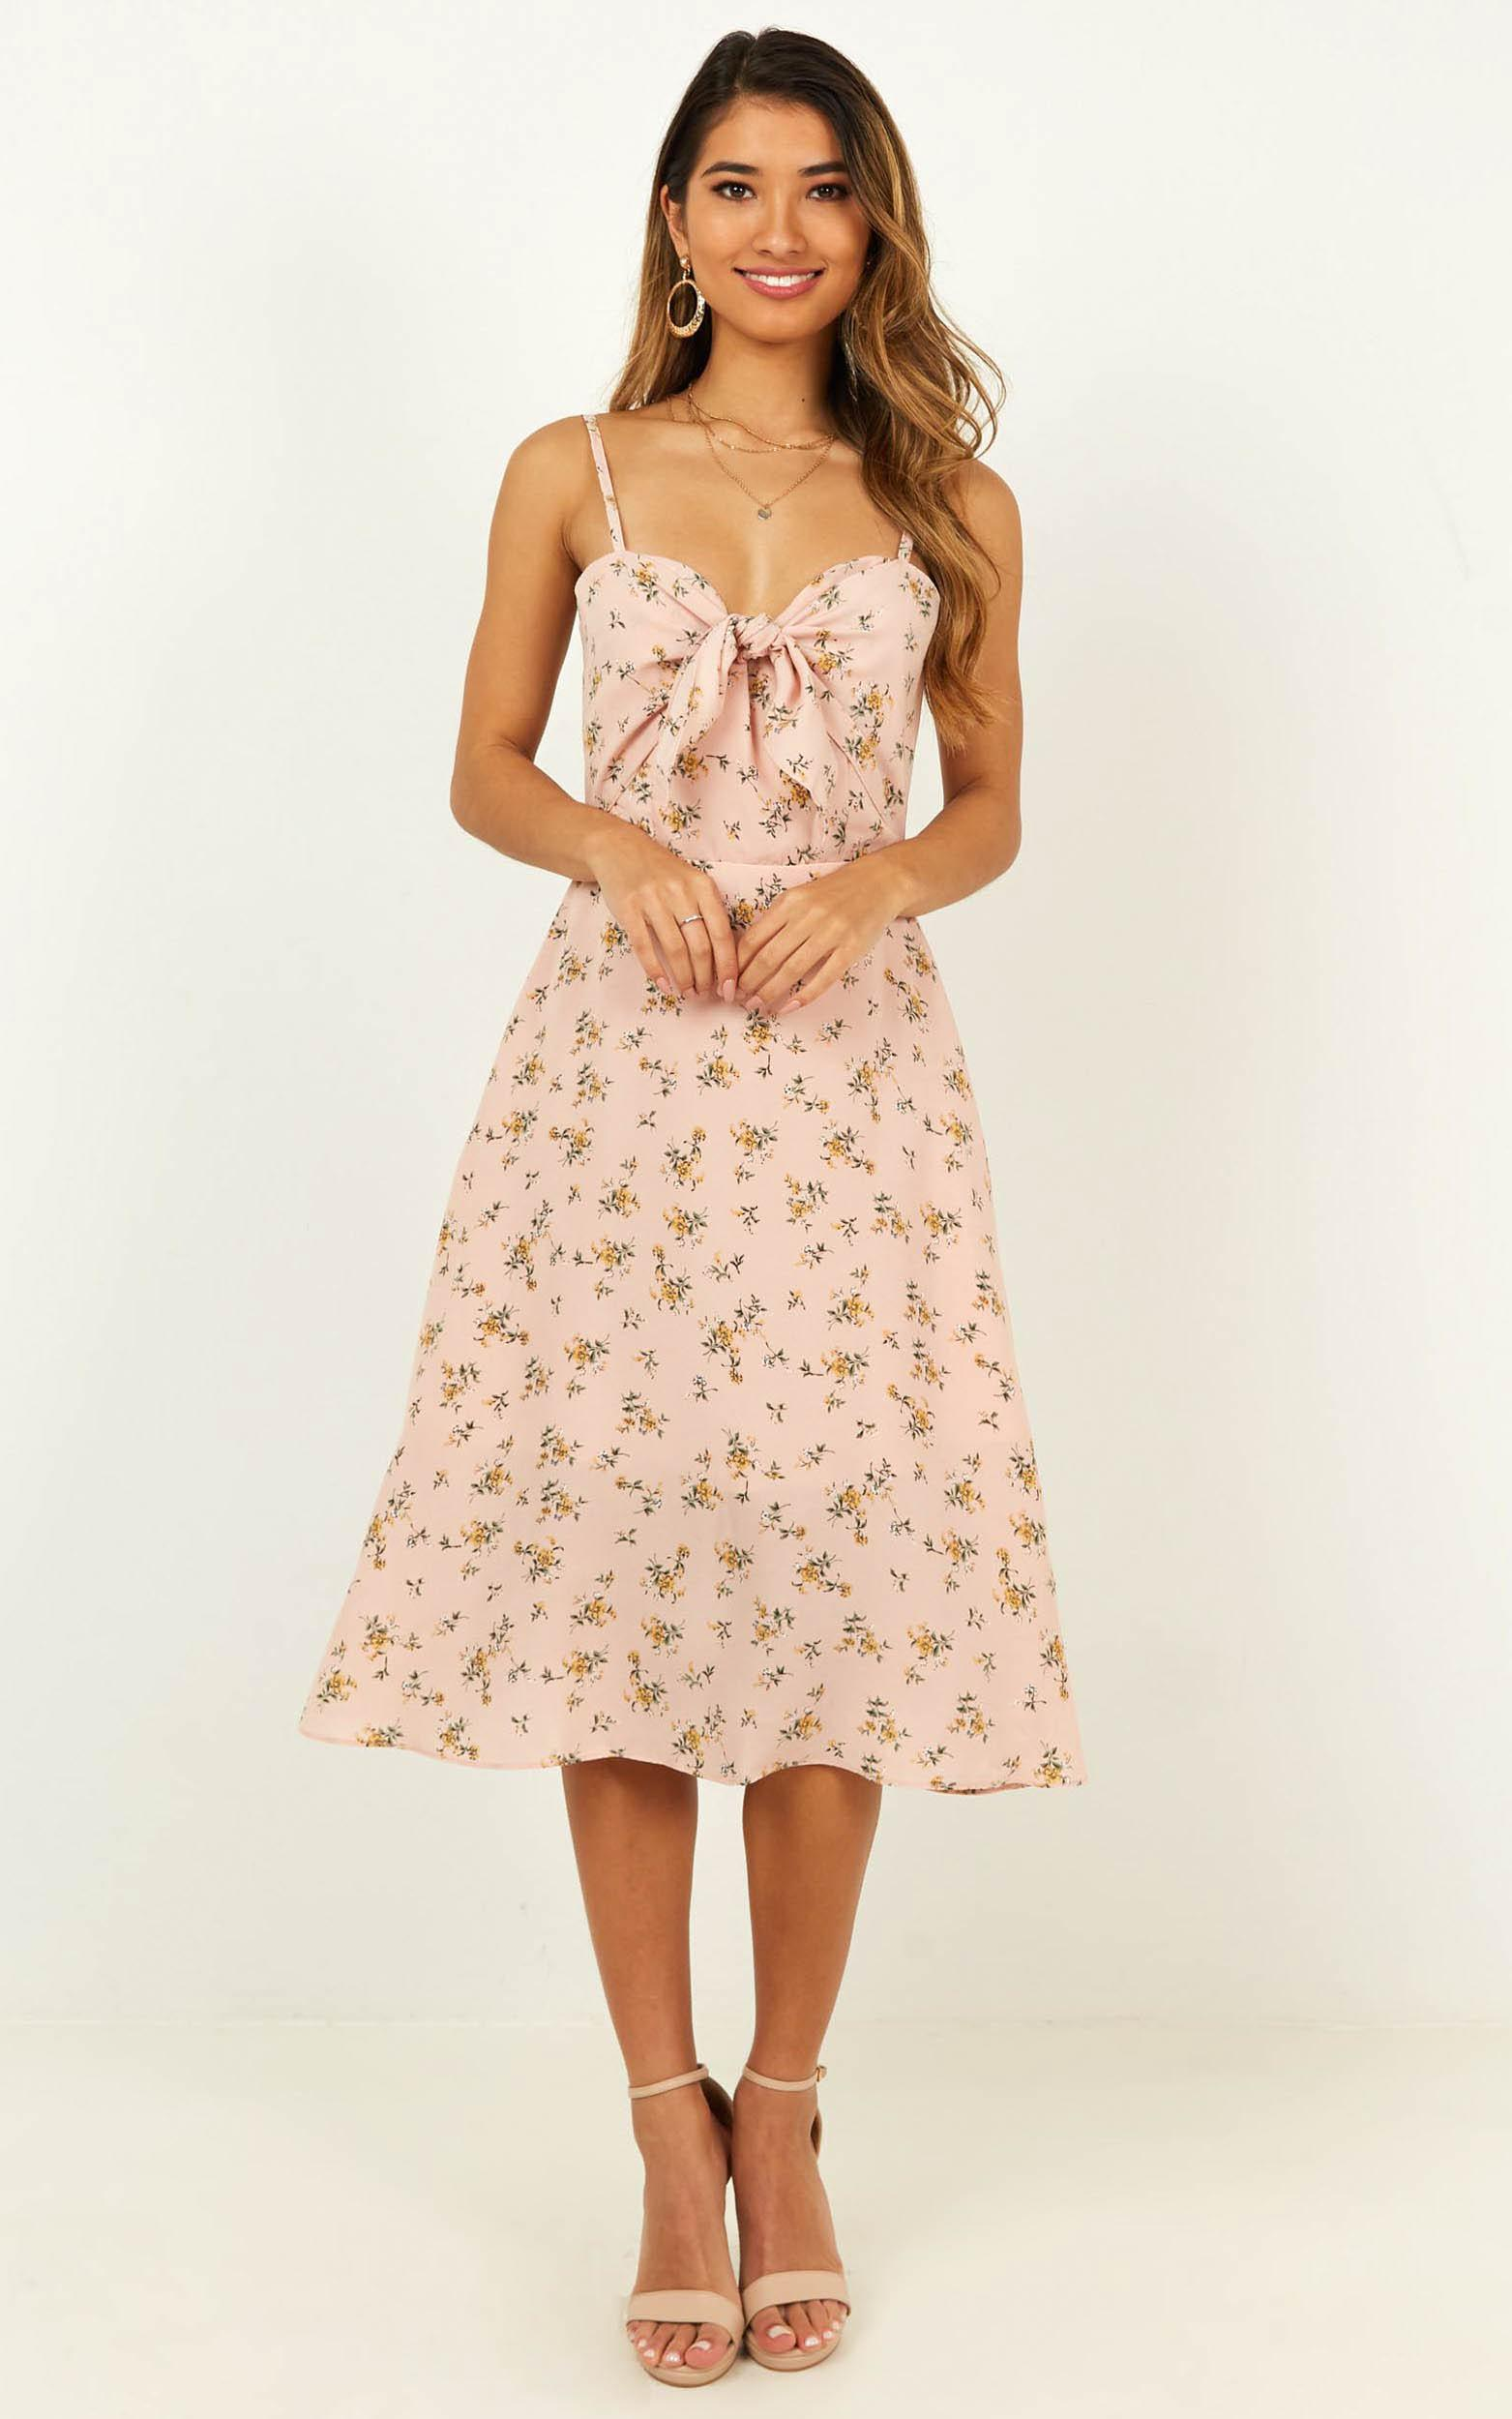 Im Grateful Midi Dress in blush floral - 20 (XXXXL), Blush, hi-res image number null